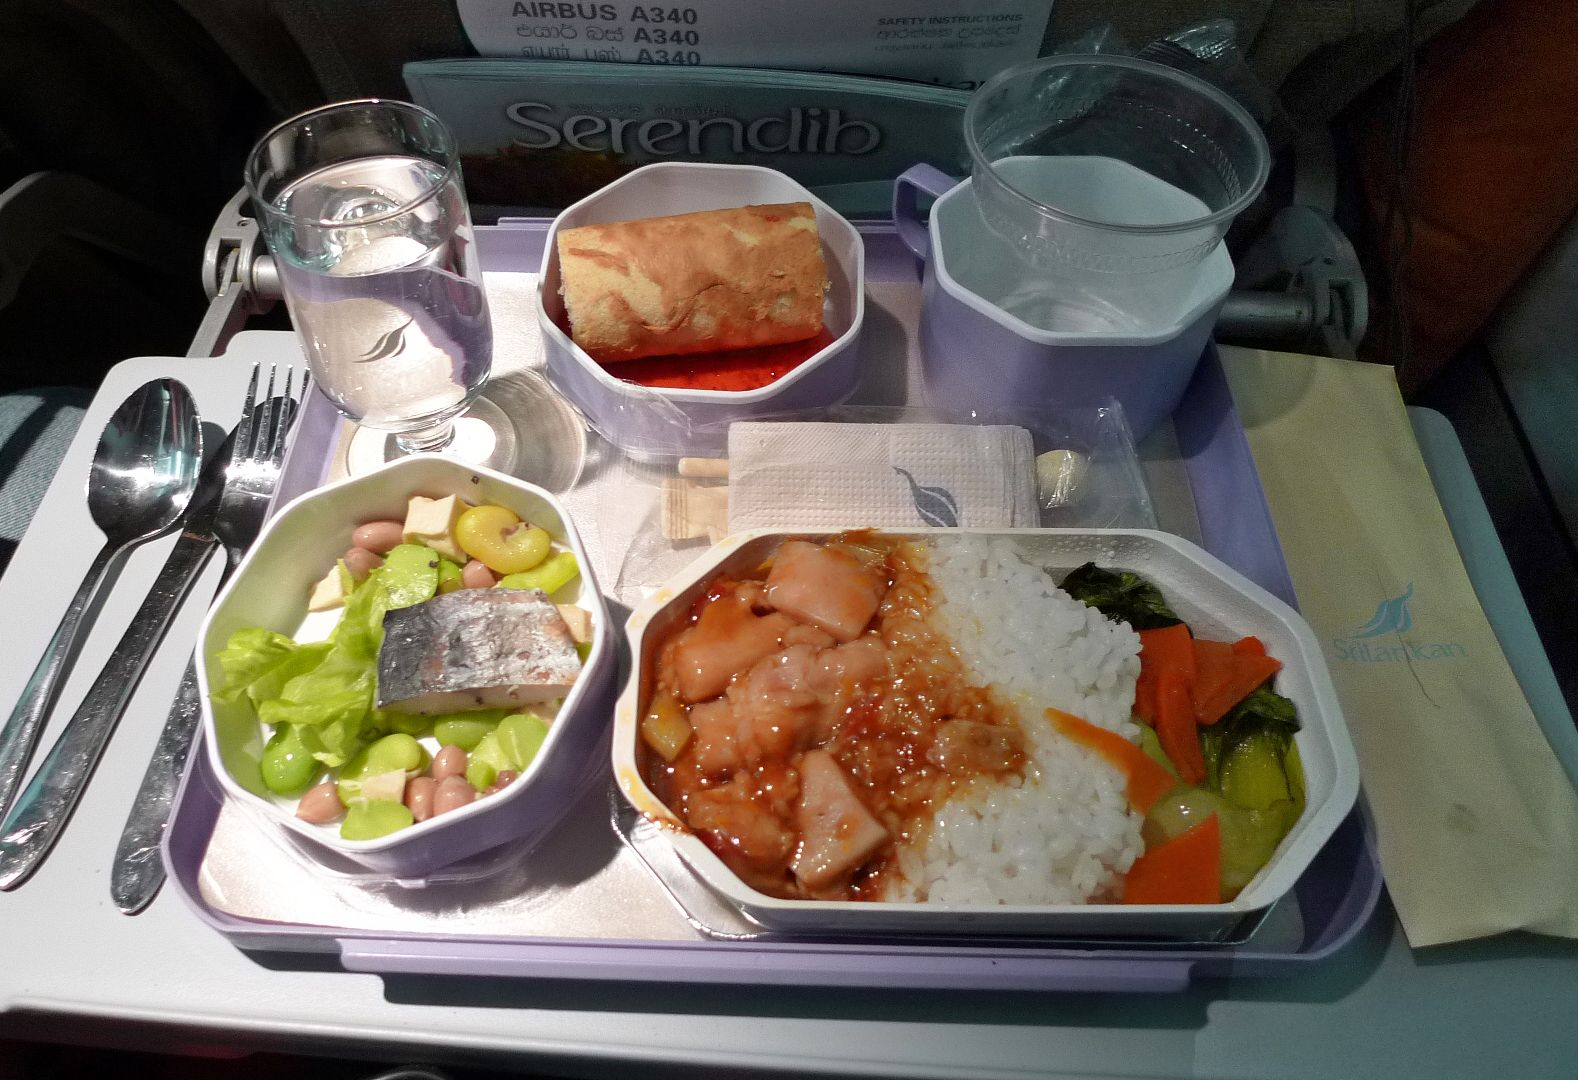 Sri Lanka Airline Meal Air Lines Pinterest Airline